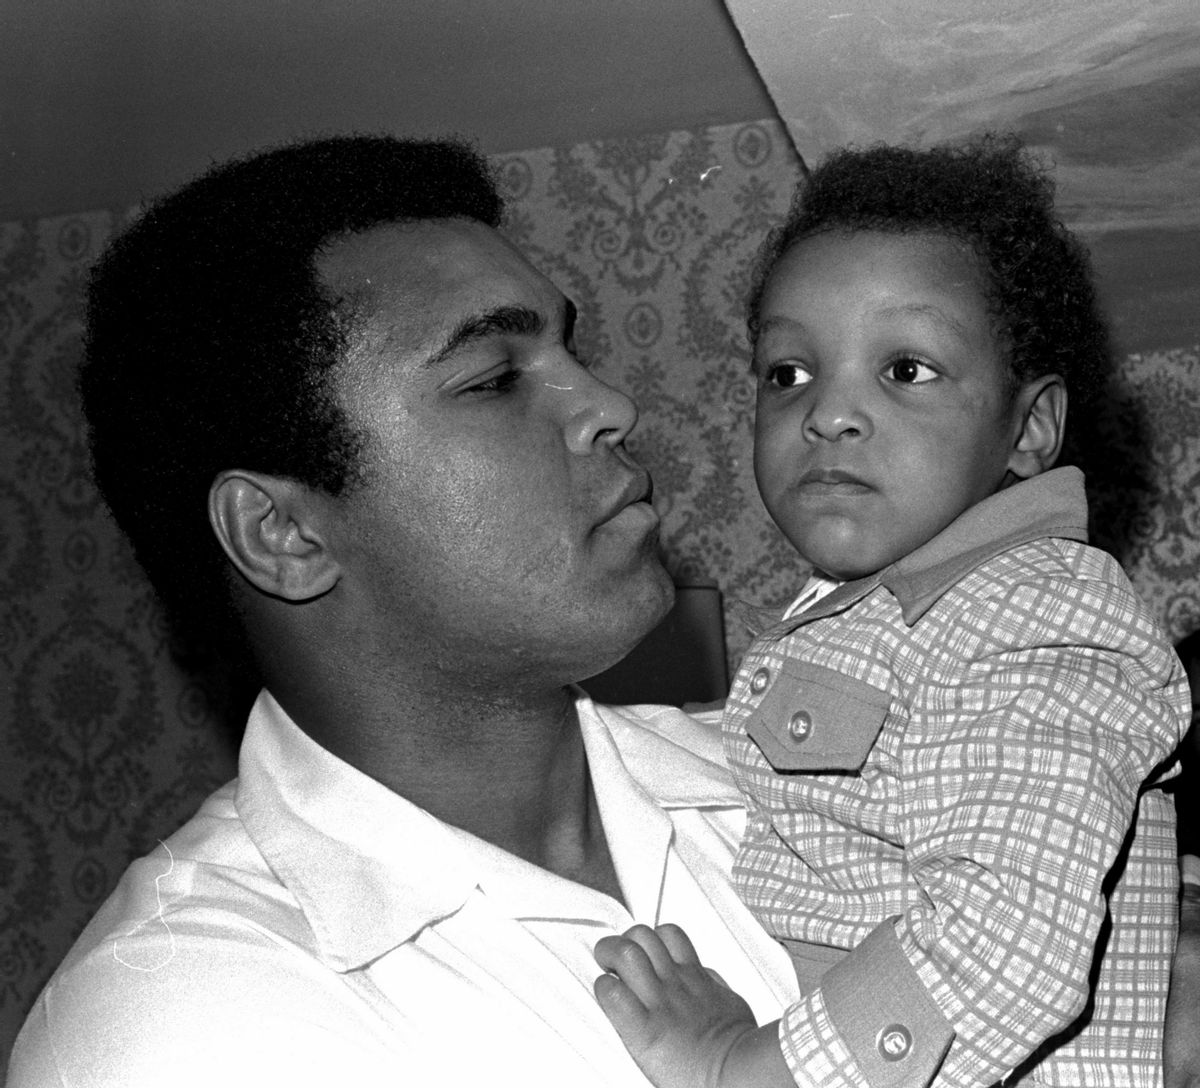 Heavyweight boxing champion Muhammad Ali, and Little Muhammad Ali, his 2 1/2 year old son, arrive at Miami Beach, Fla.   (Associated Press)